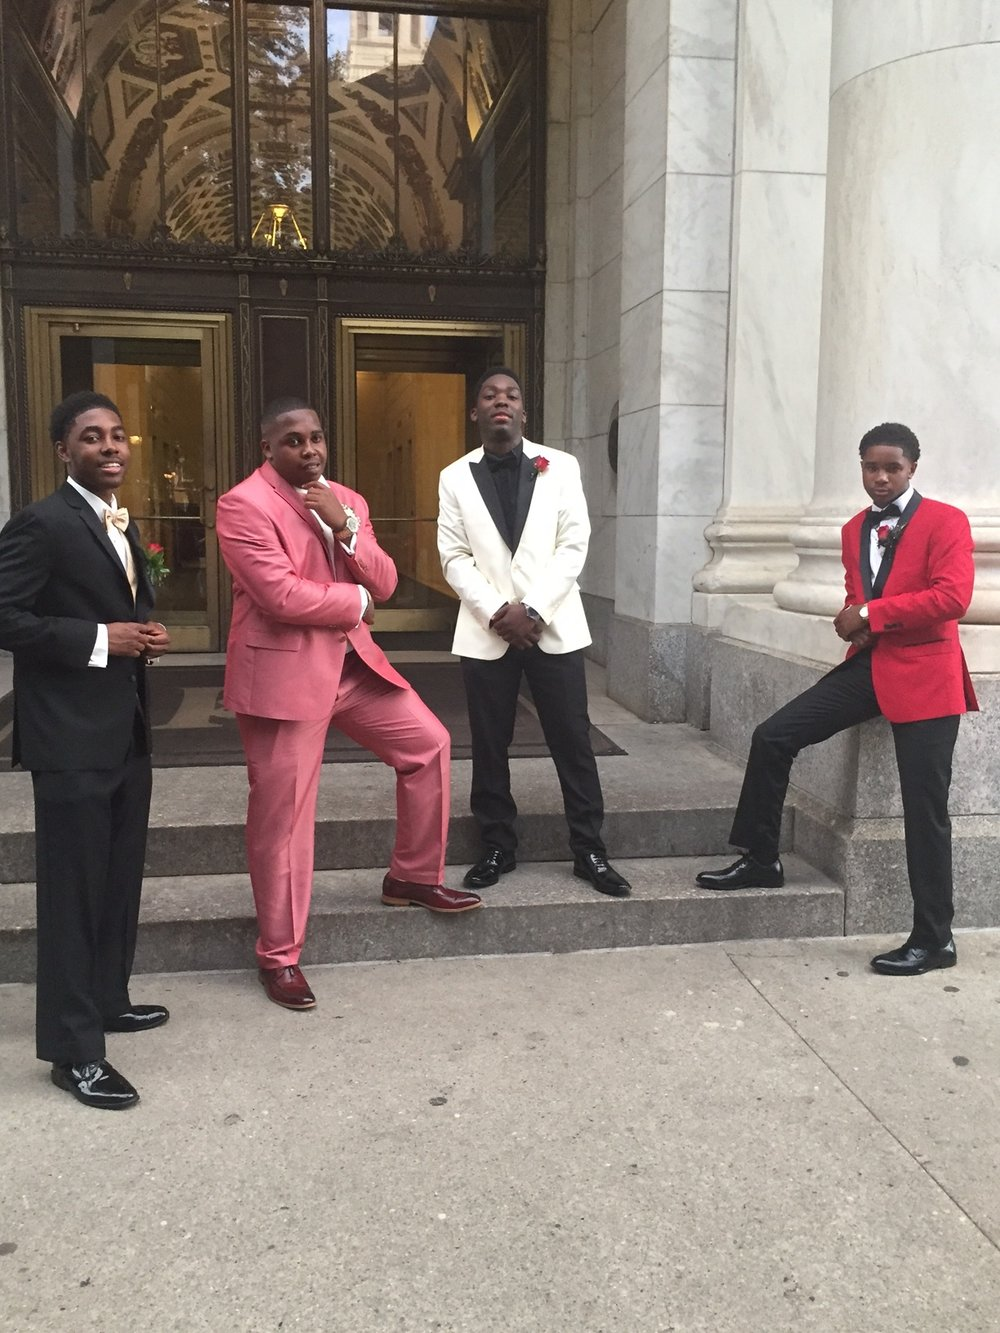 """The Tribe""--Gary Williams, Maurice Scott, Rayshawn Johnson, and Rashaan Brooks, Jr (left to right)--leaned on each other to navigate the challenges and opportunities of growing up and going to school at the academically rigorous J.R. Masterman School in Philadelphia. Consistently ranked as one of the top high schools in the state and even in the country, Masterman prepares its students for success after graduation. The Tribe is no exception: Gary, Maurice, and Rashaan are all headed to the University of Pittsburgh, and Rayshawn is going to Yale.  The Tribe's time at Masterman wasn't strictly spent studying. The young men all play prominent roles in the schools African American Culture Committee, a club dedicated to fostering and growing the school's black student population. Rashaan, Gary, Maurice, and Rayshawn were four of just seven black young men in their grade of 108 students."